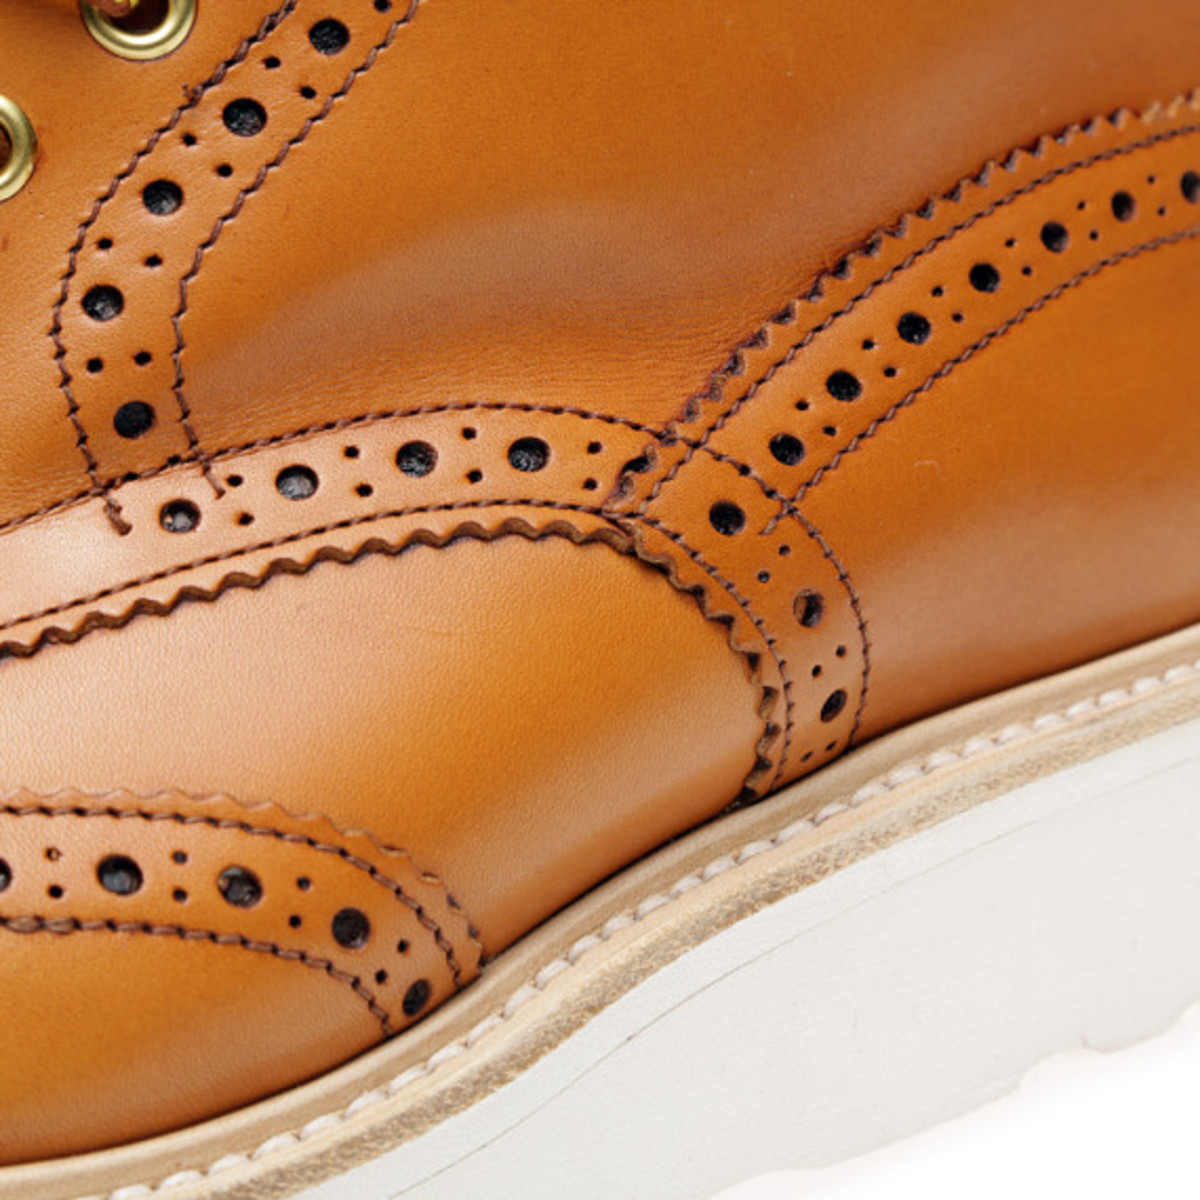 end-trickers-vibram-sole-stow-boot-23